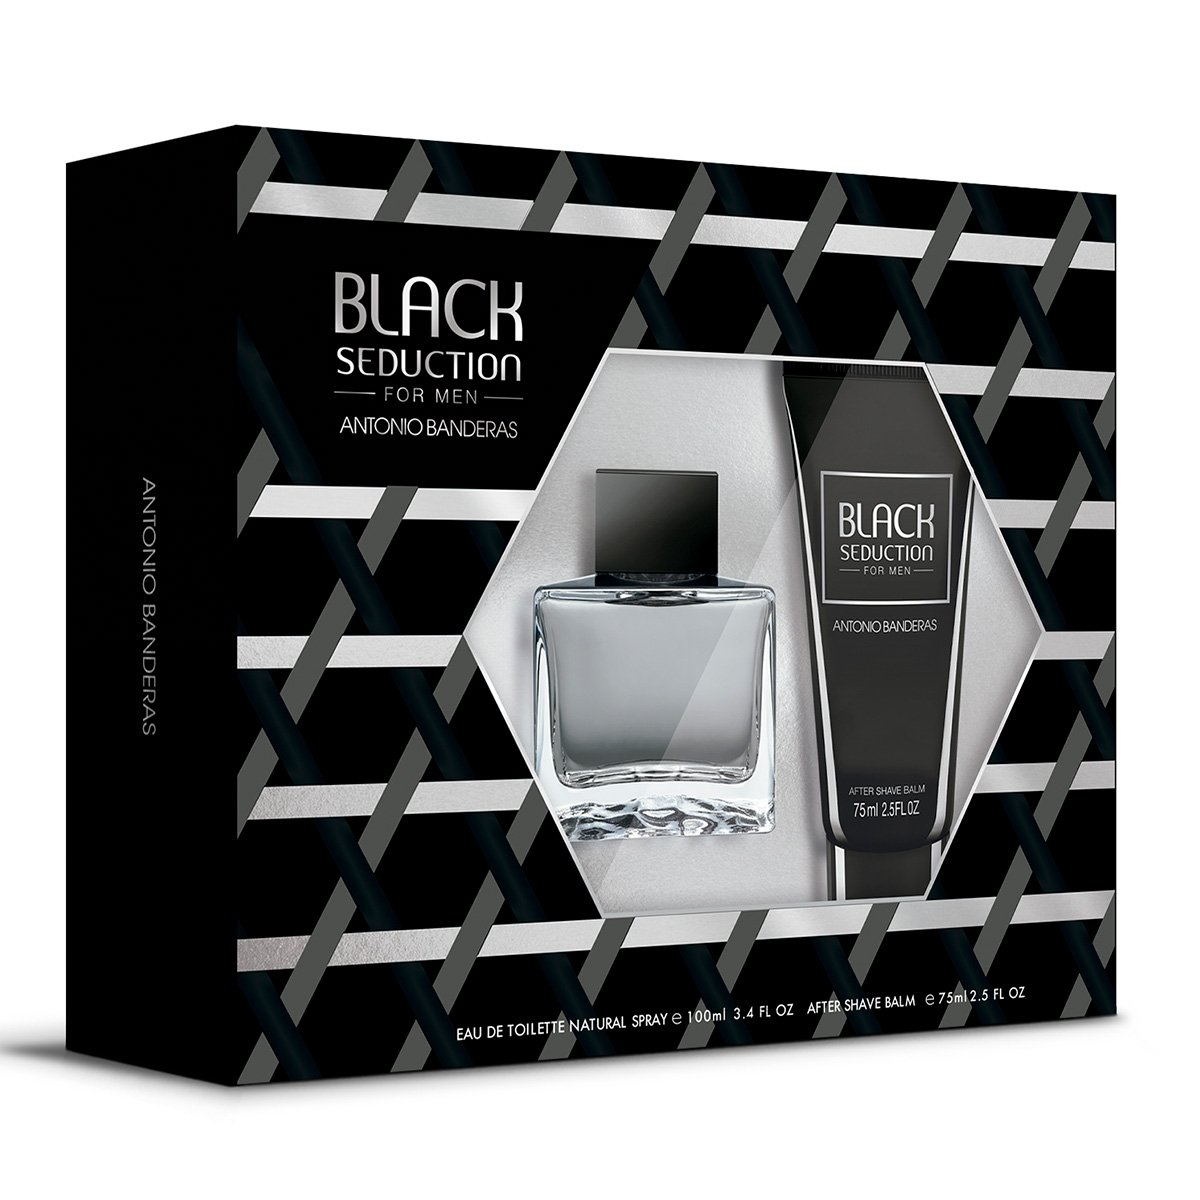 Kit Antonio Banderas Seduction in Black Men - Eau de Toilette 100ml+ Pós-Barba 75ml